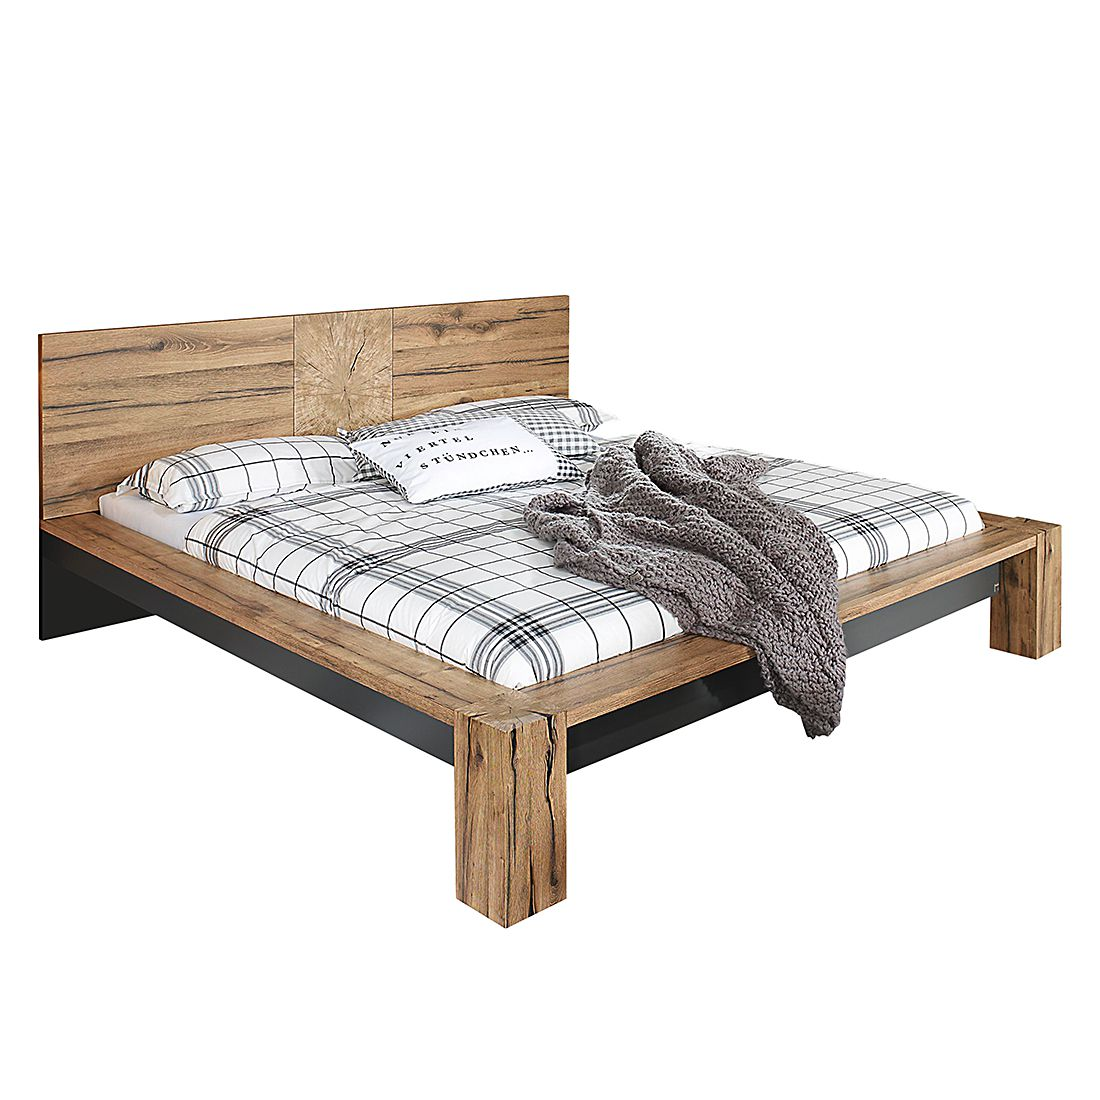 Futon Design Images Open Arm Futon Futon Designs Itbed - Lit futon design